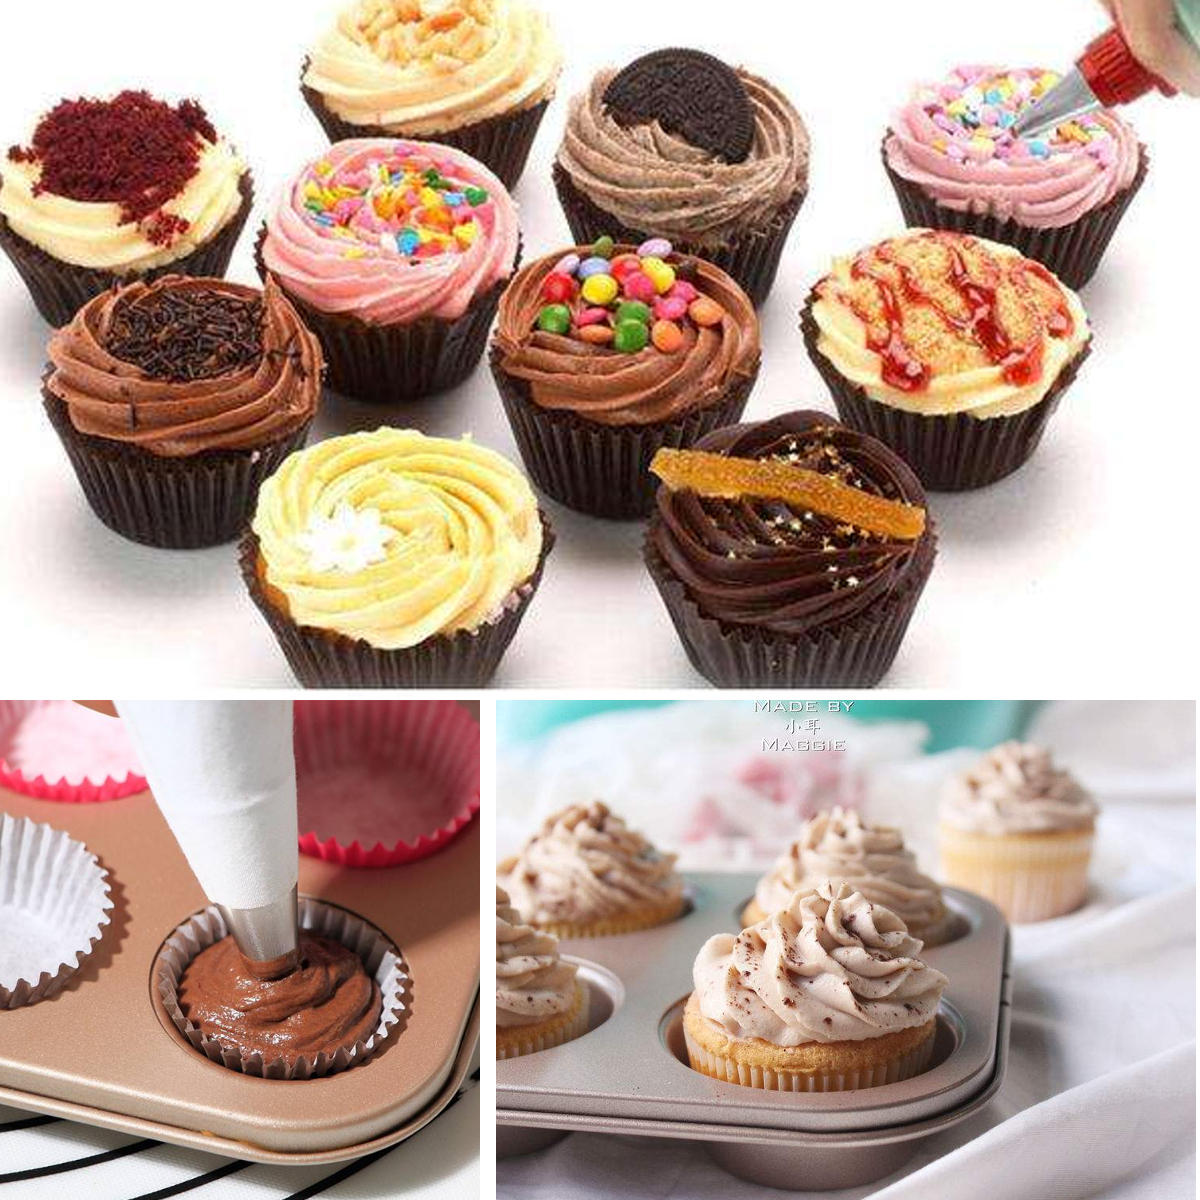 KCASA KC-PN15 7pc/set Silicone Icing Piping Nozzle Cream Pastry Bag Stainless Steel Nozzle Sets Cake DIY Decorating Baking Tool - 12